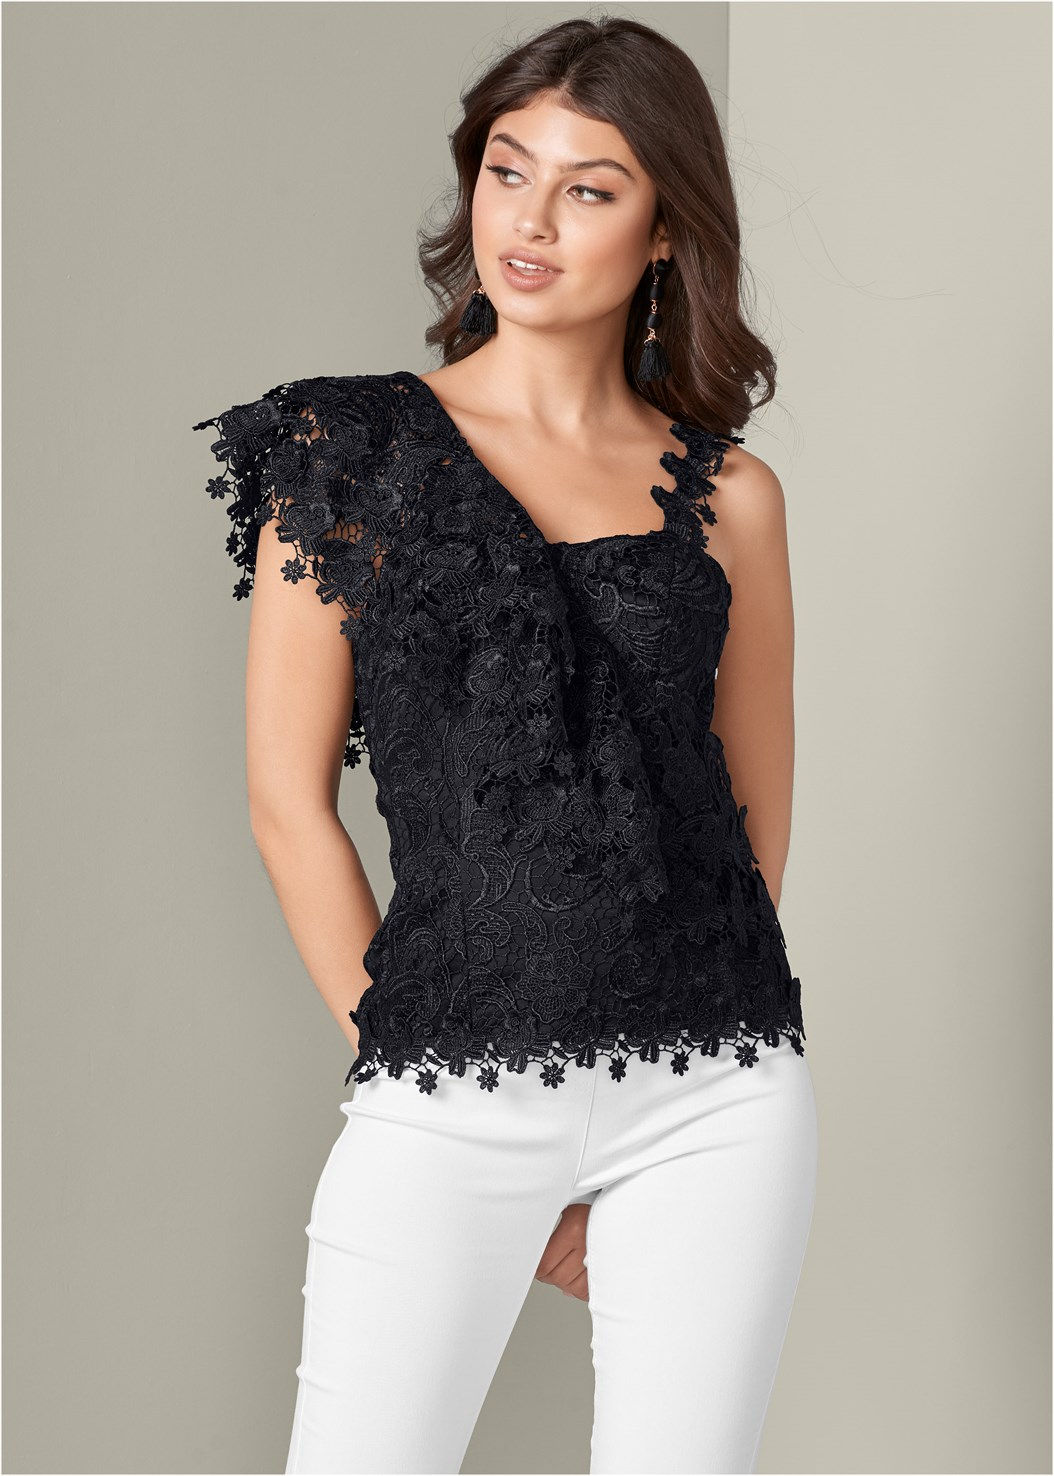 Ruffle Detail Lace Top,Mid Rise Slimming Stretch Jeggings,Bauble Fringe Earrings